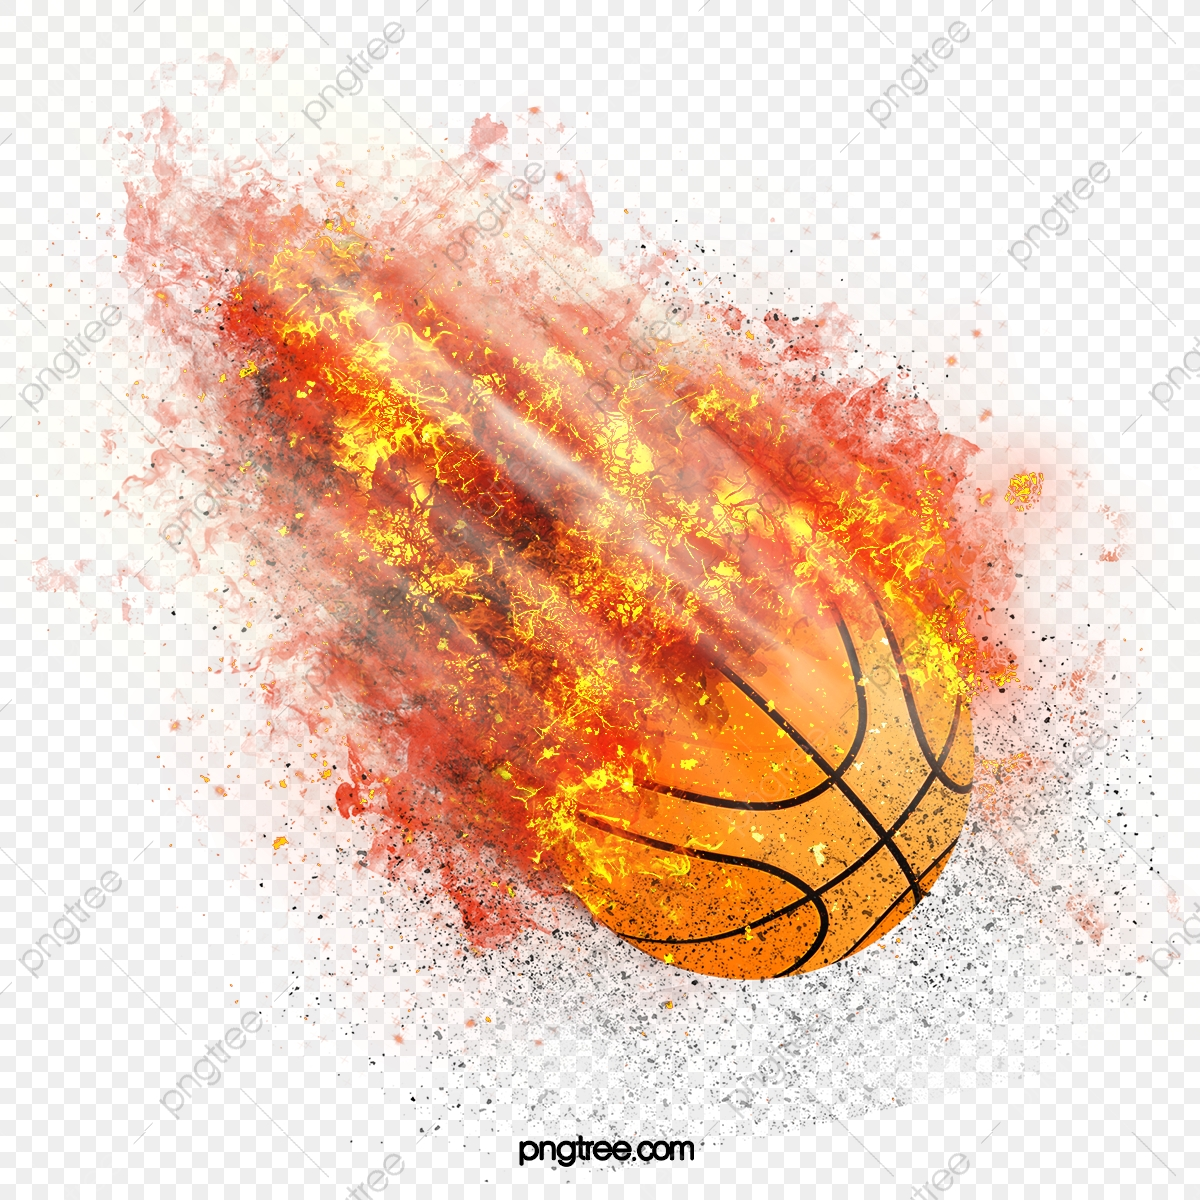 Basket Ball On Fire 3d Illustration Stock Photo, Picture And Royalty Free  Image. Image 9460161.